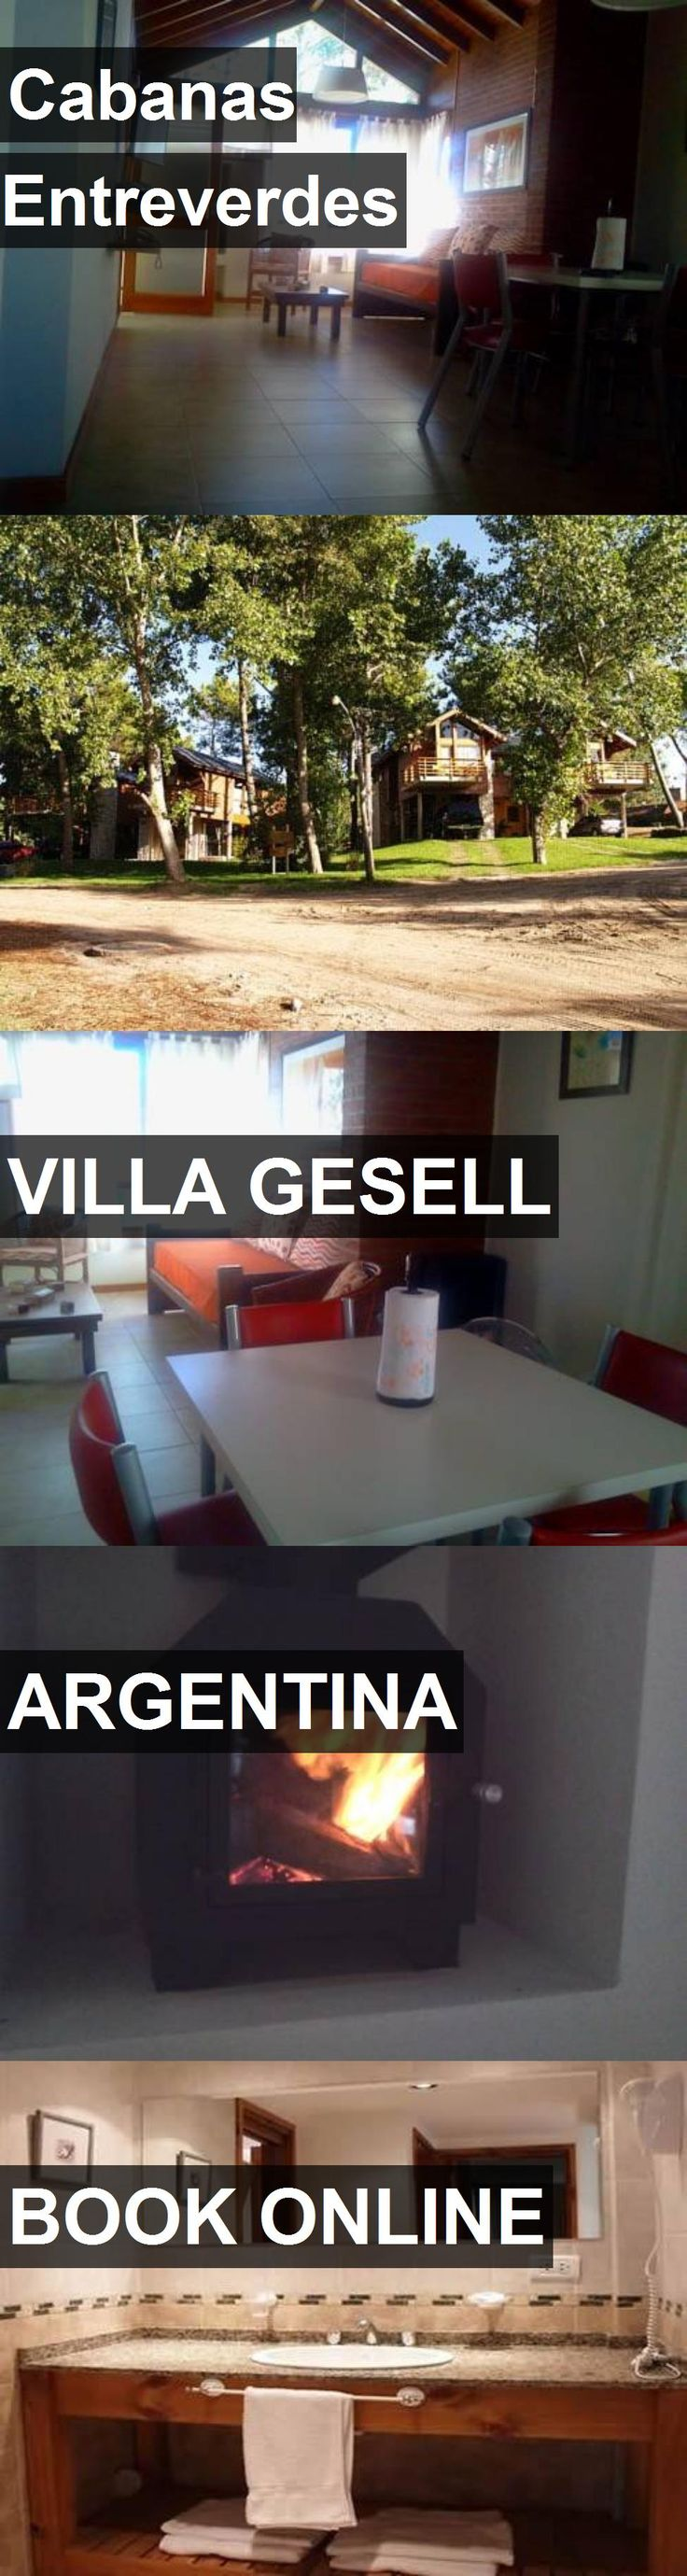 Hotel Cabanas Entreverdes in Villa Gesell, Argentina. For more information, photos, reviews and best prices please follow the link. #Argentina #VillaGesell #CabanasEntreverdes #hotel #travel #vacation